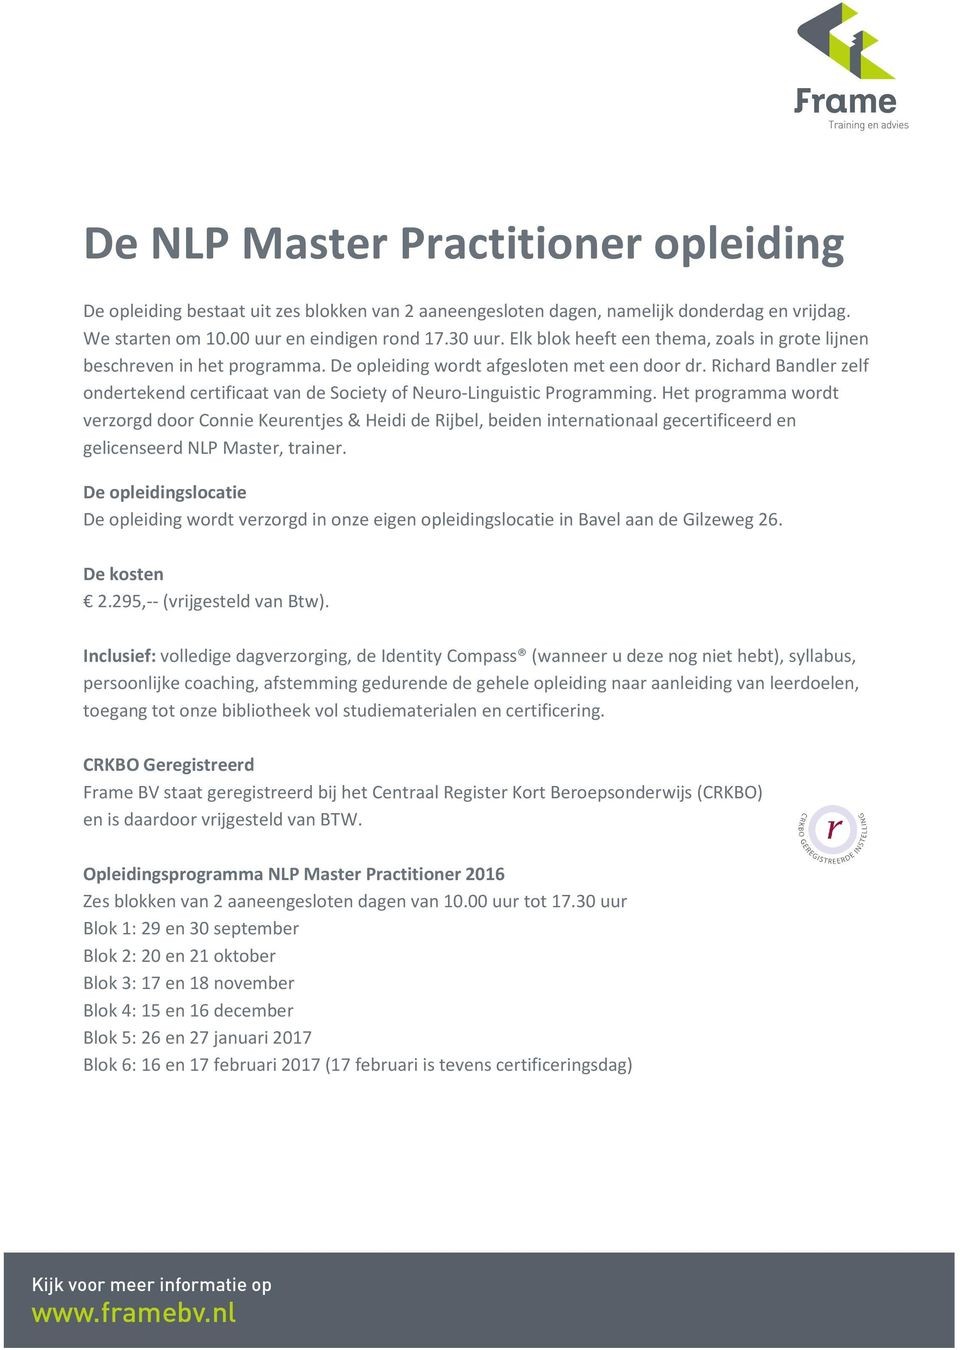 Richard Bandler zelf ondertekend certificaat van de Society of Neuro-Linguistic Programming.